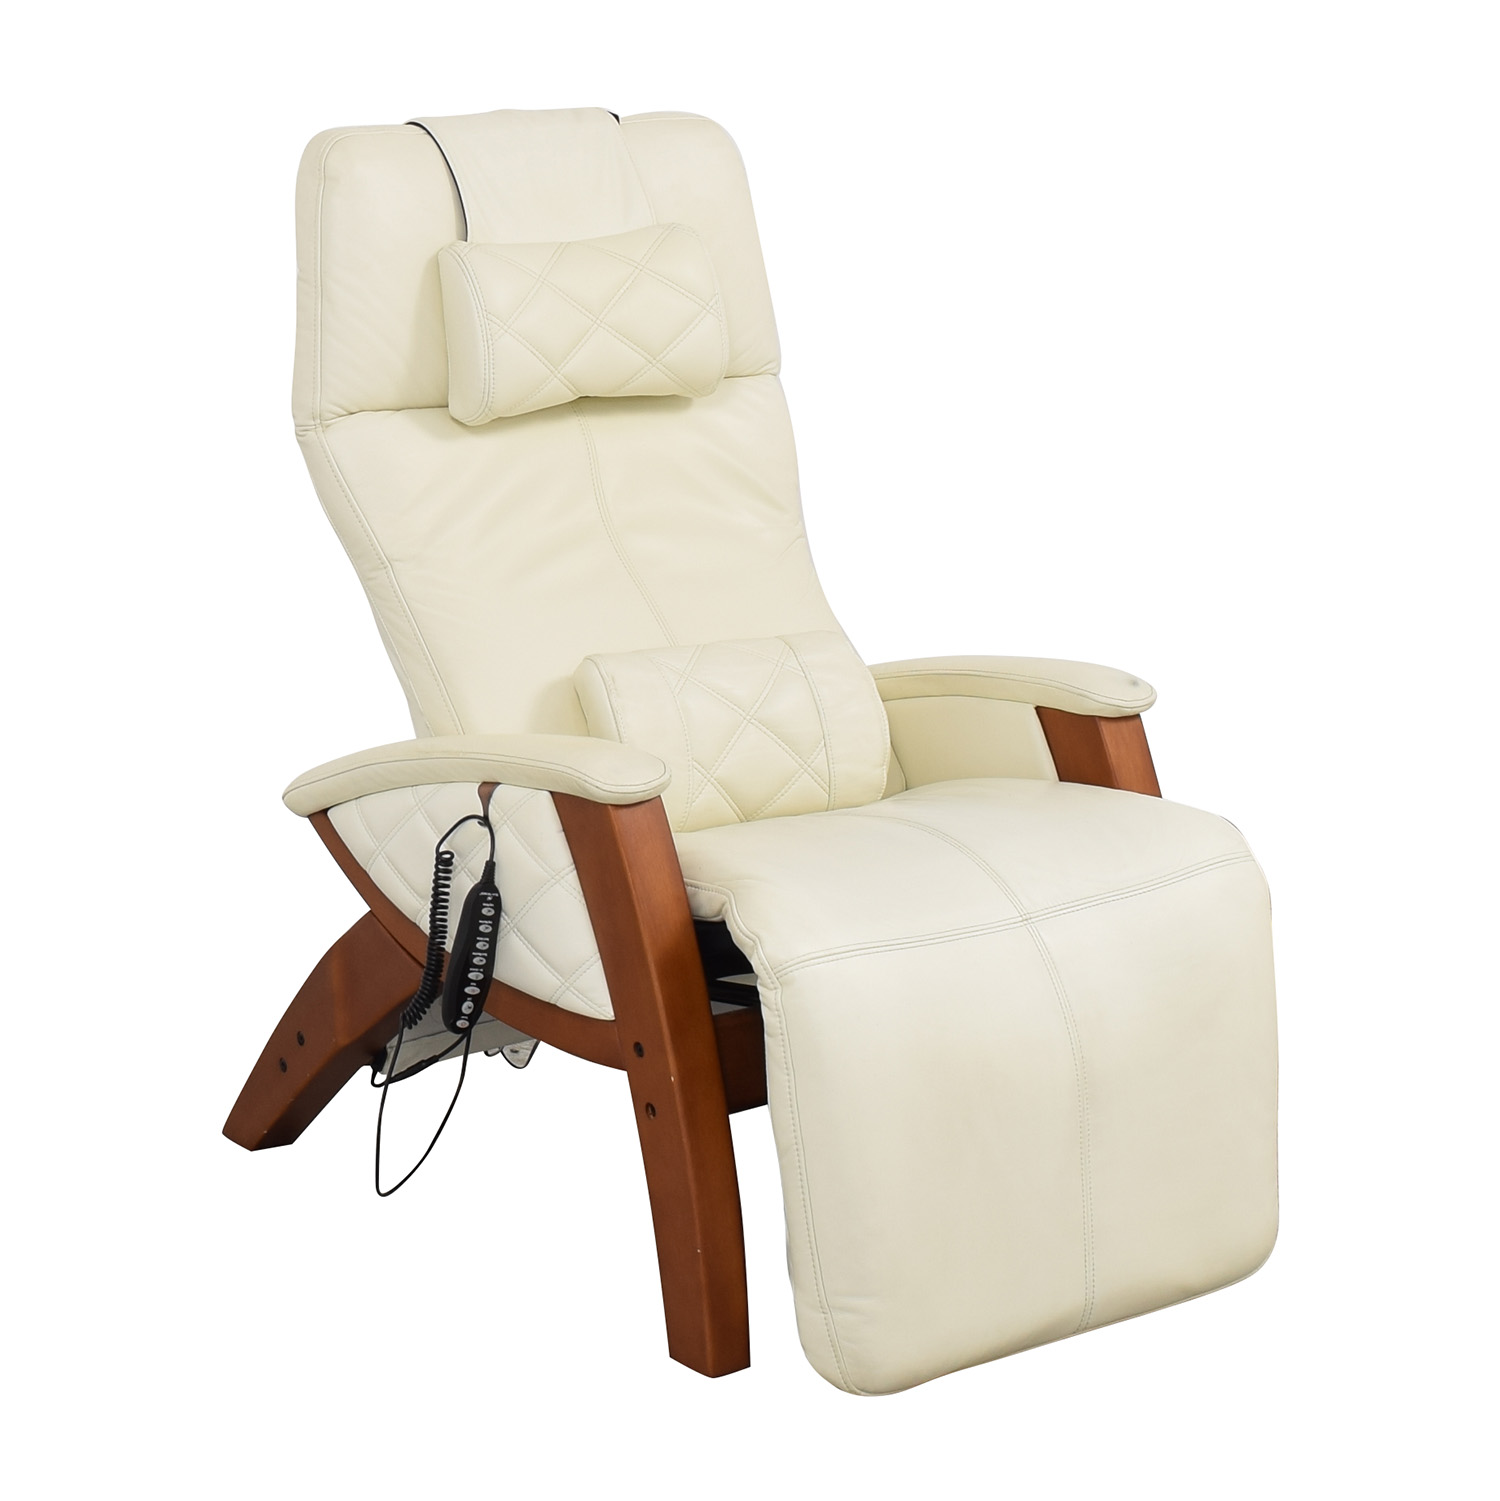 Relax The Back Relax The Back Electro Lounge Chair